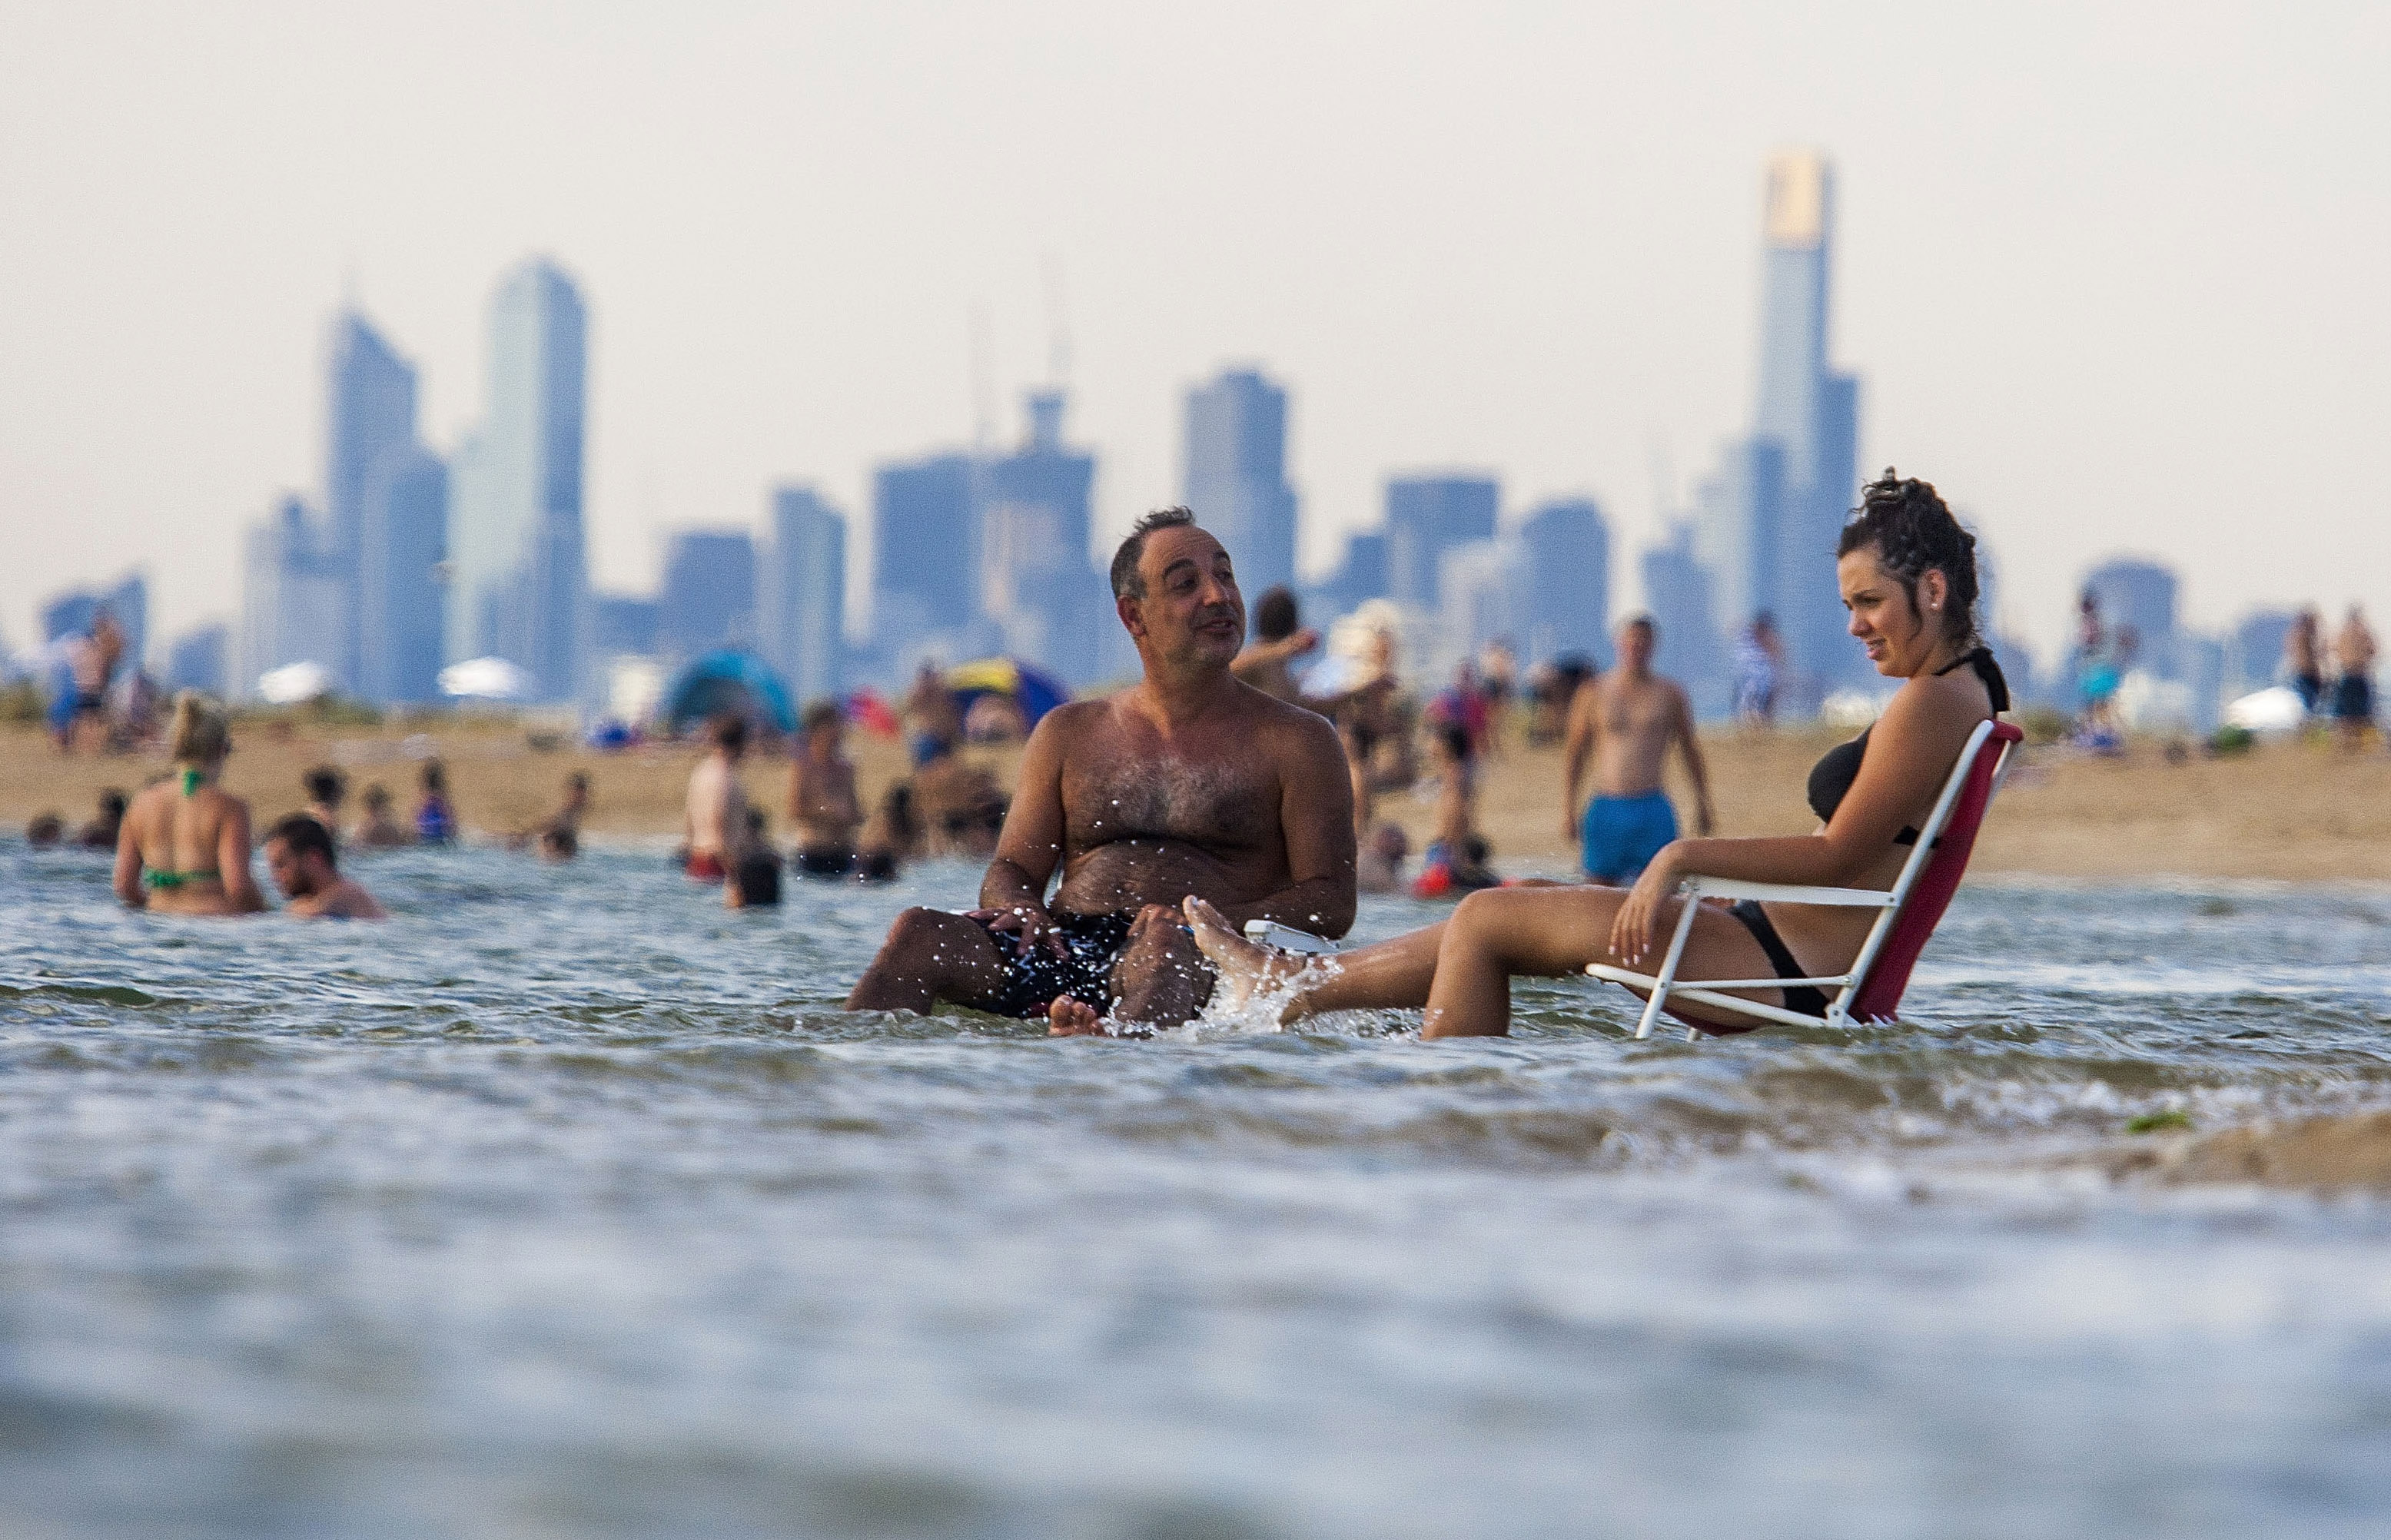 Melbournians Flock To The Beaches During Heatwave